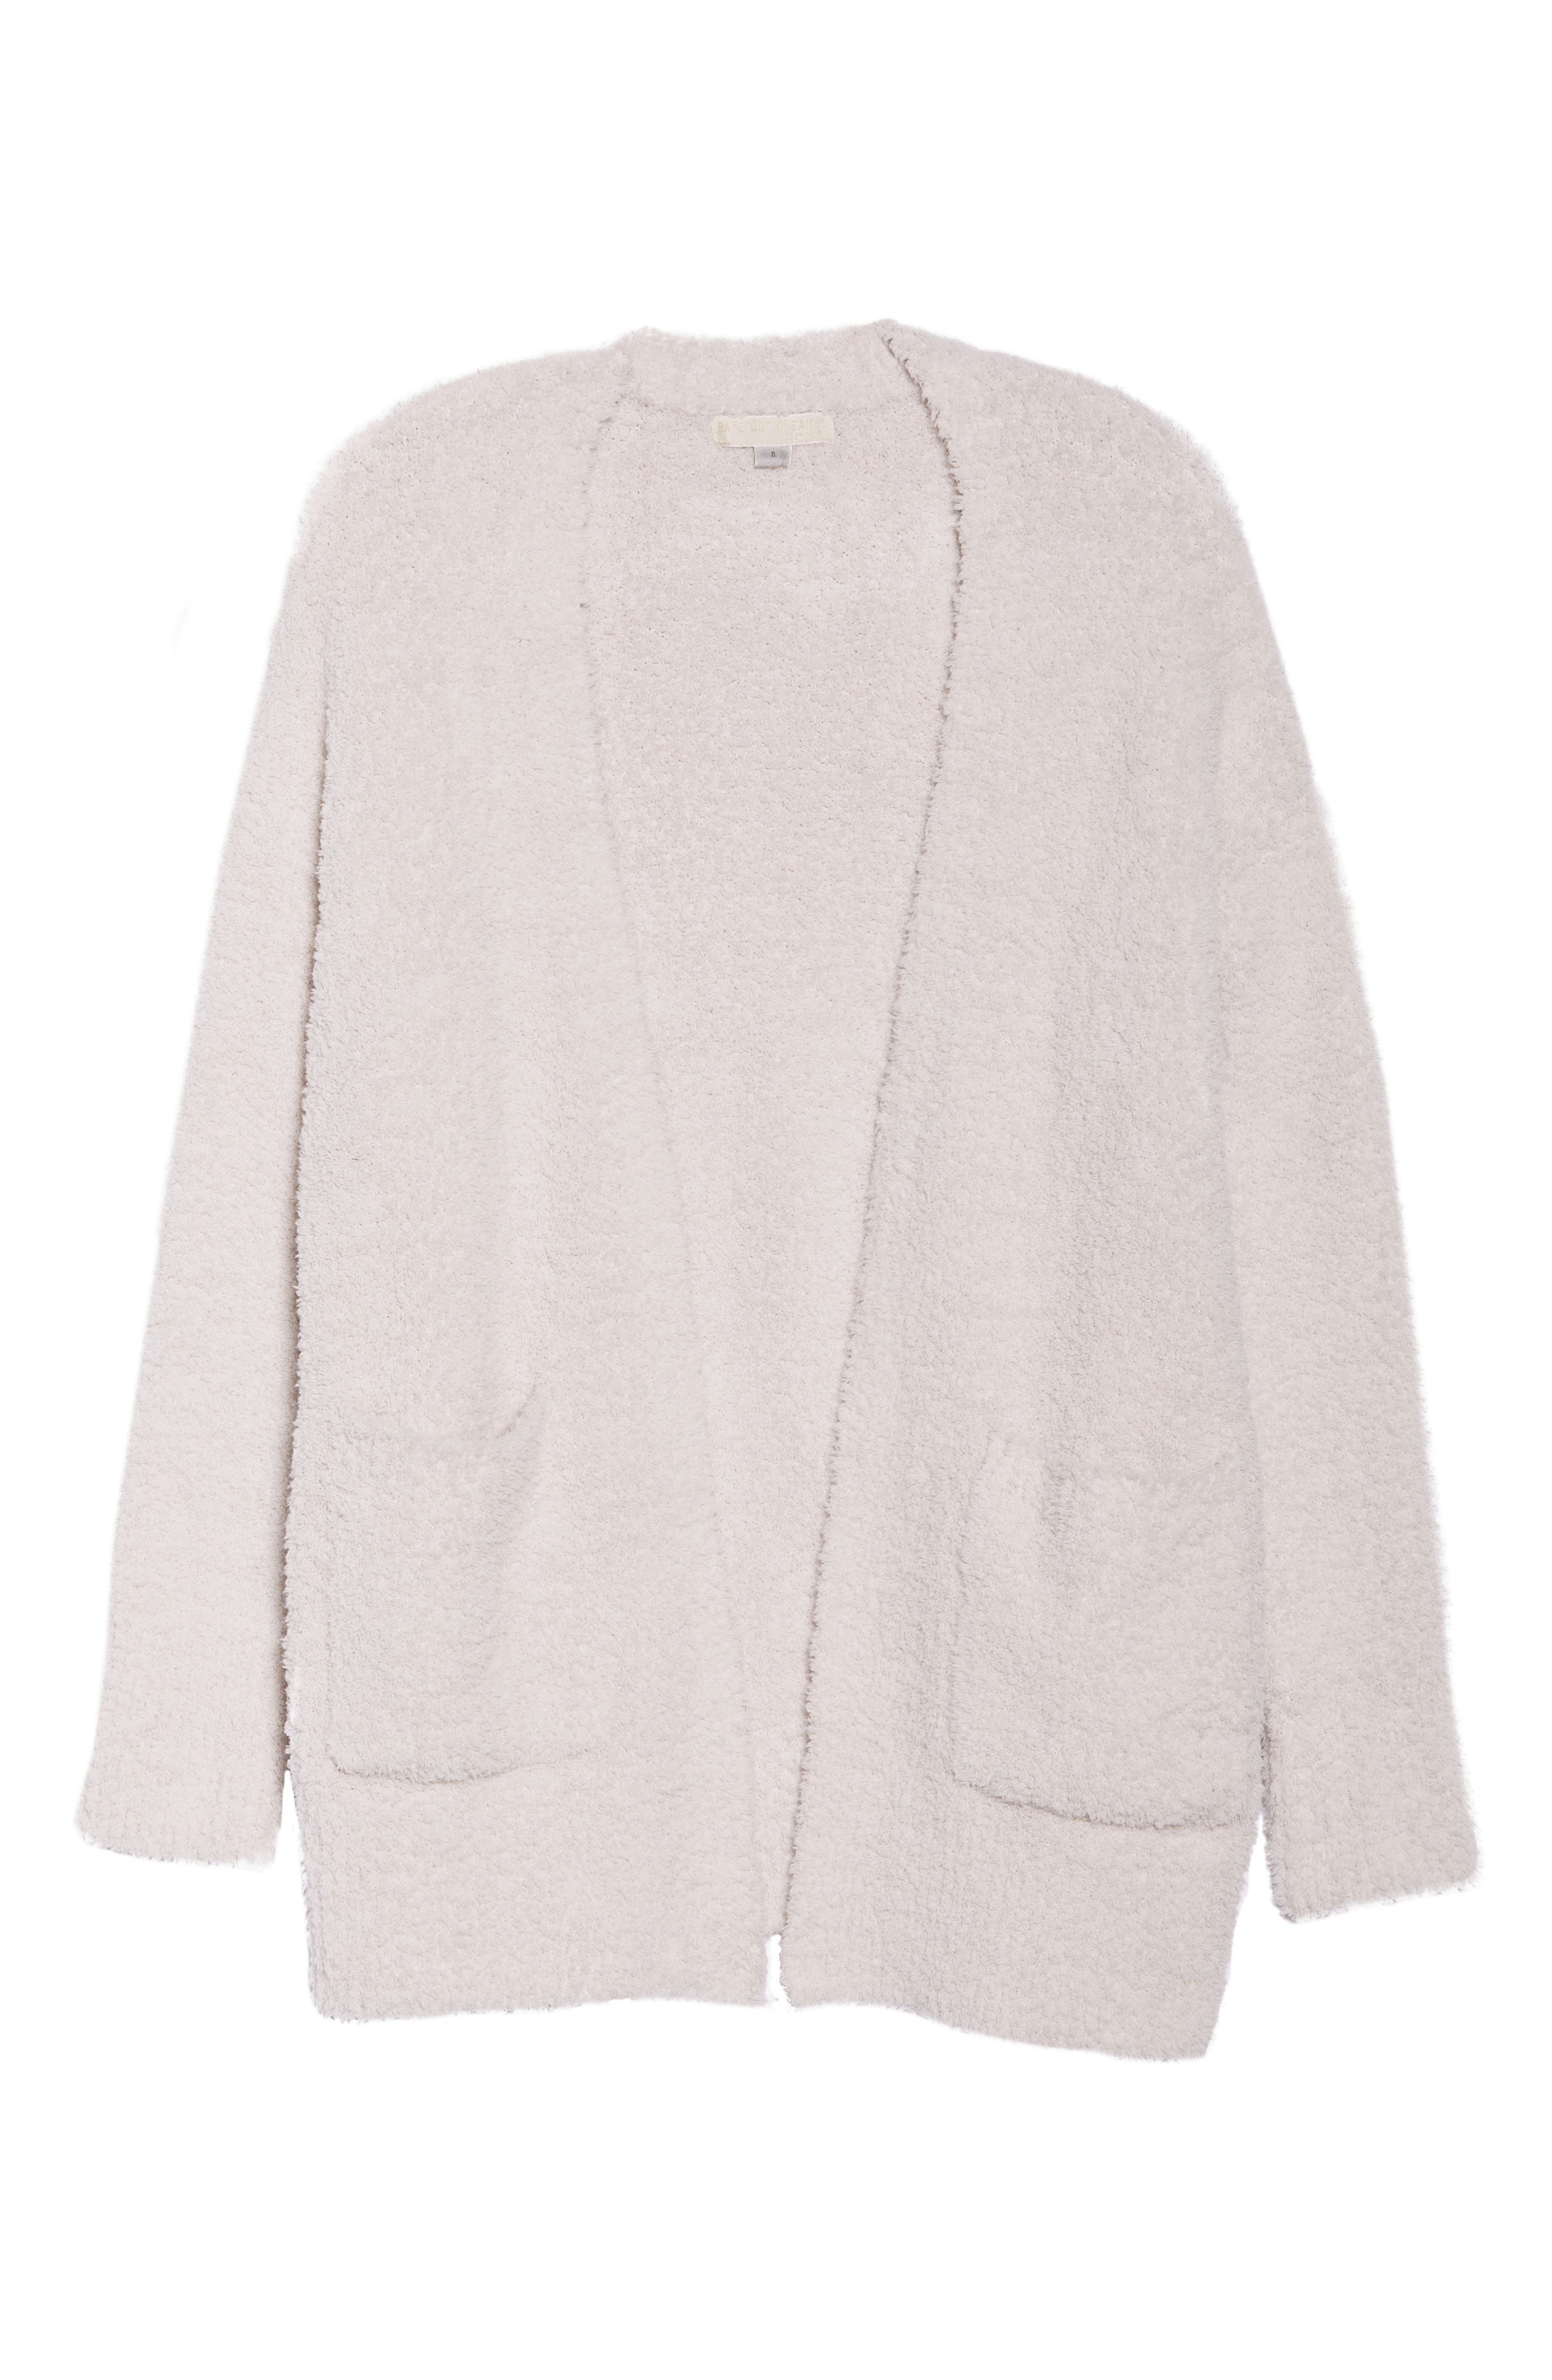 CozyChic<sup>®</sup> Cardigan,                             Alternate thumbnail 6, color,                             ALMOND